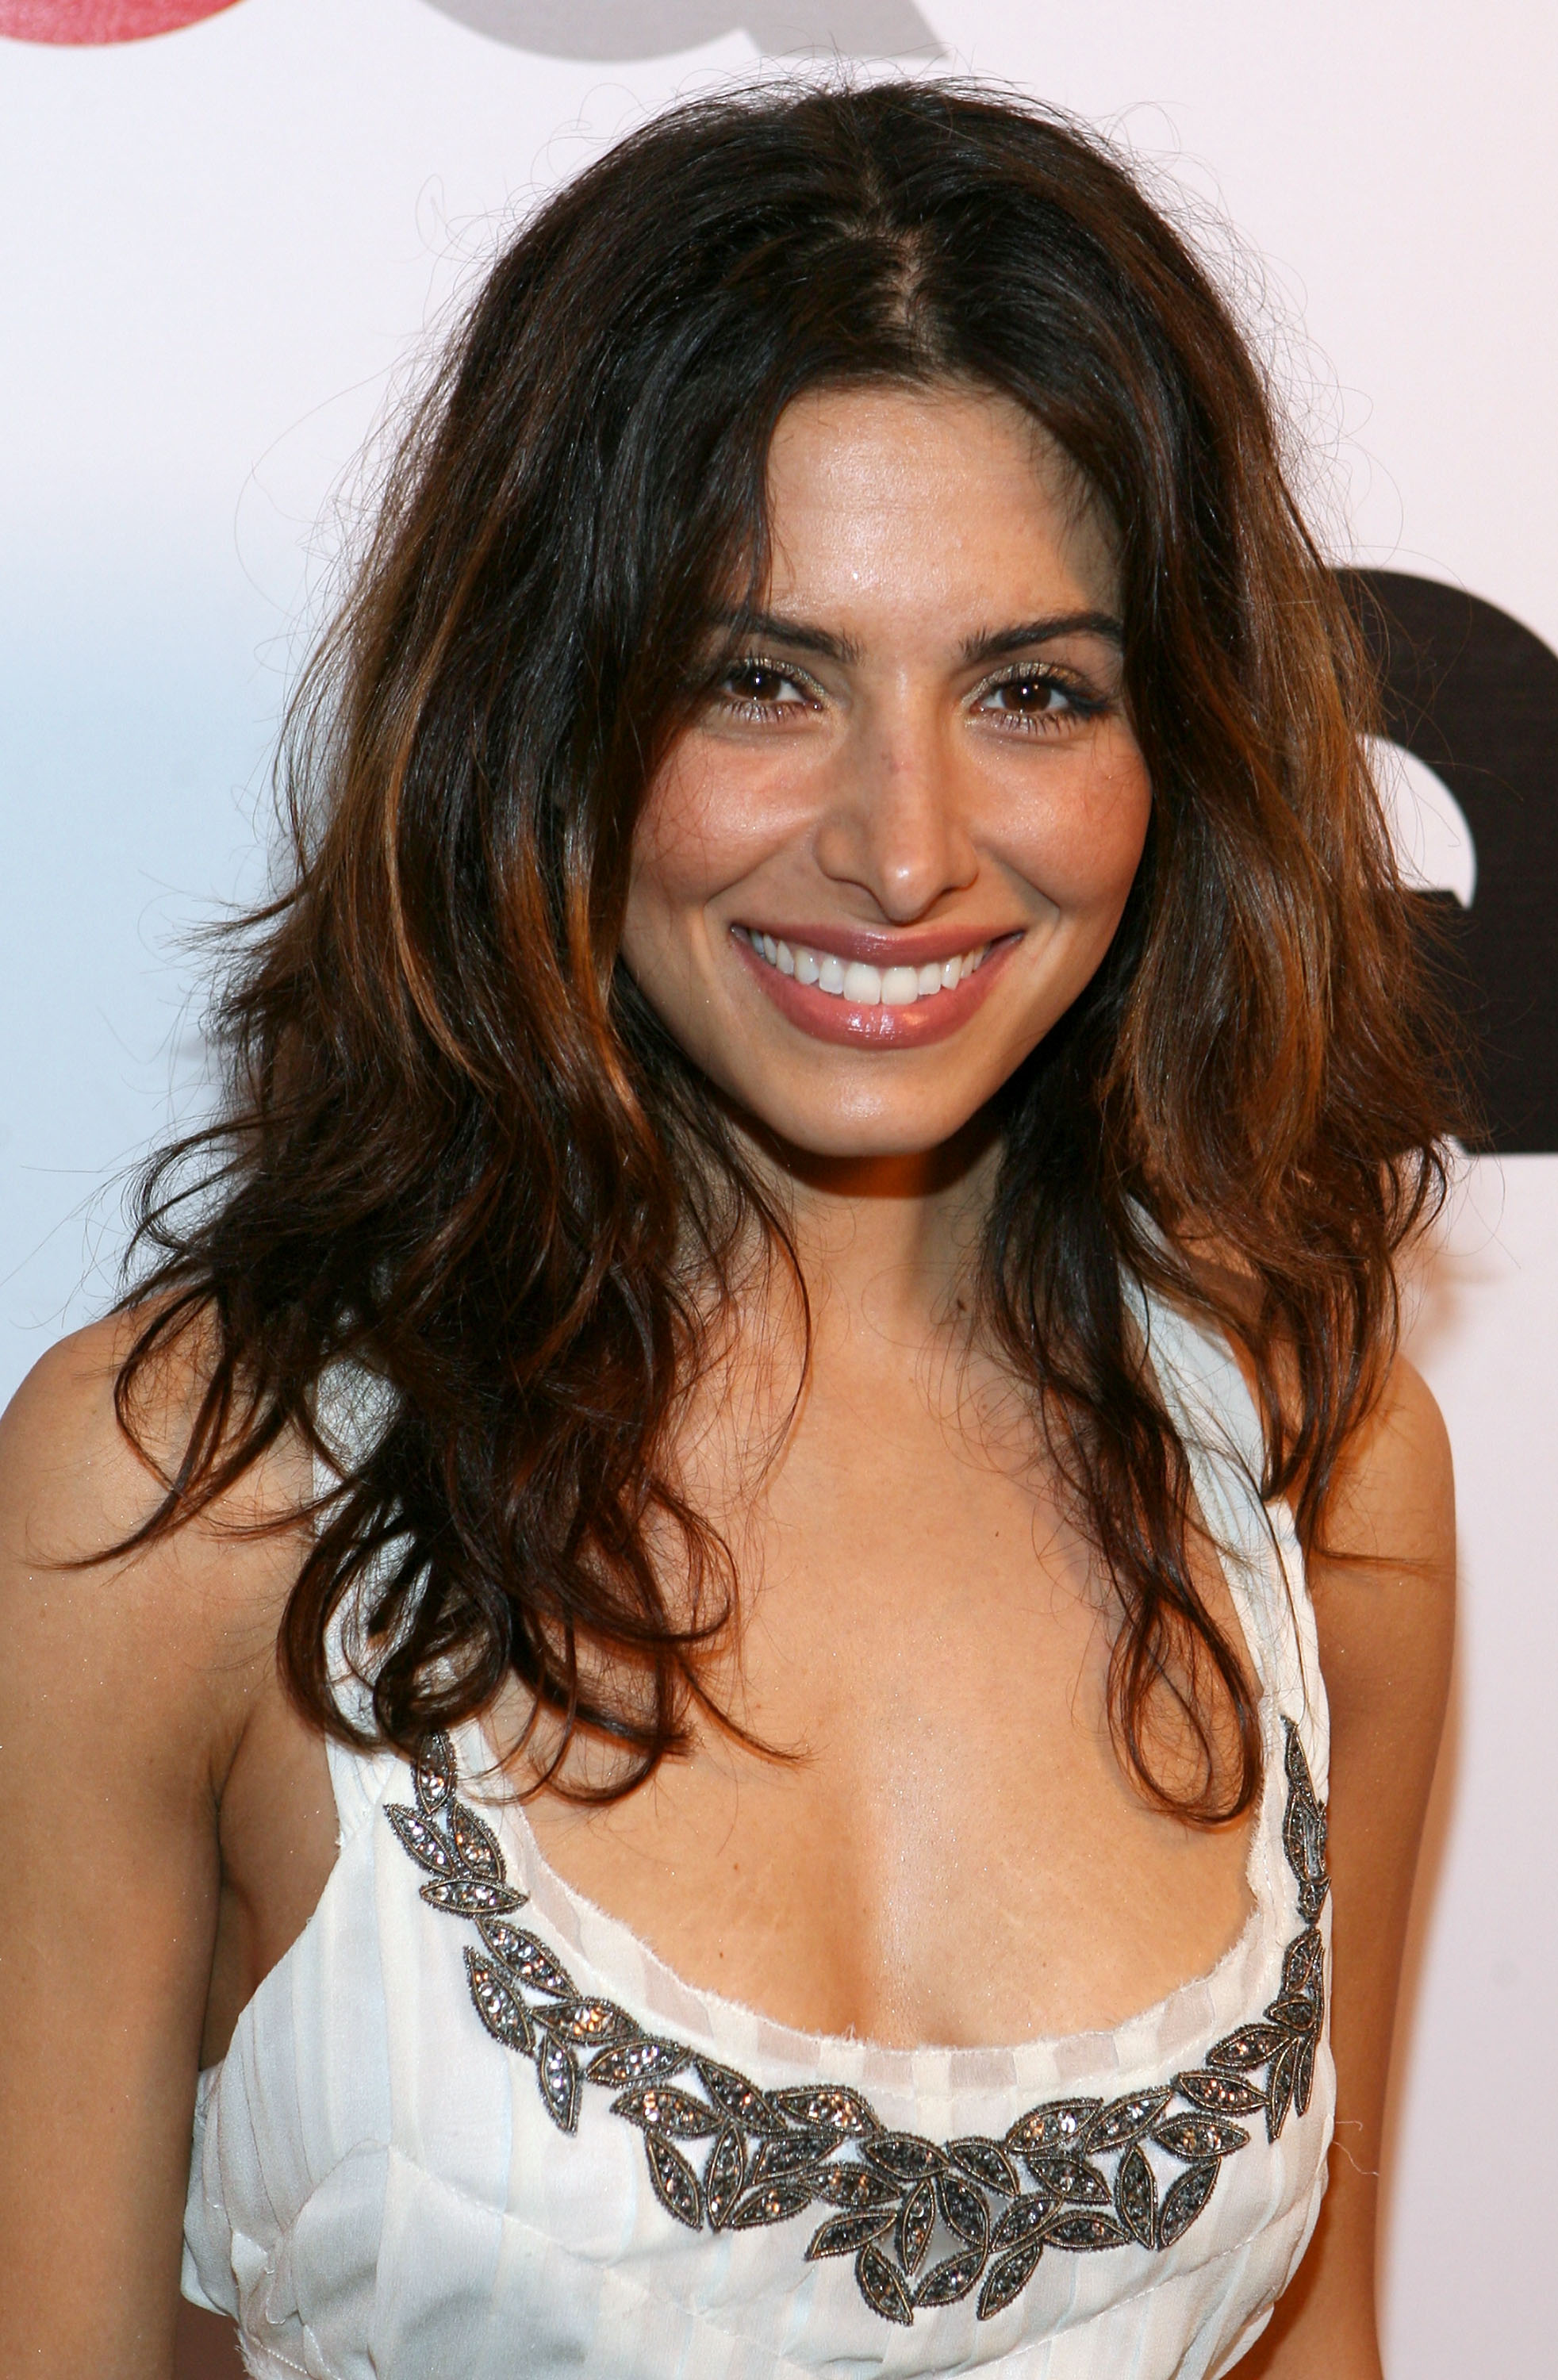 Sarah Shahi Videos and Photos (27) at FreeOnes Sarah shahi photo gallery